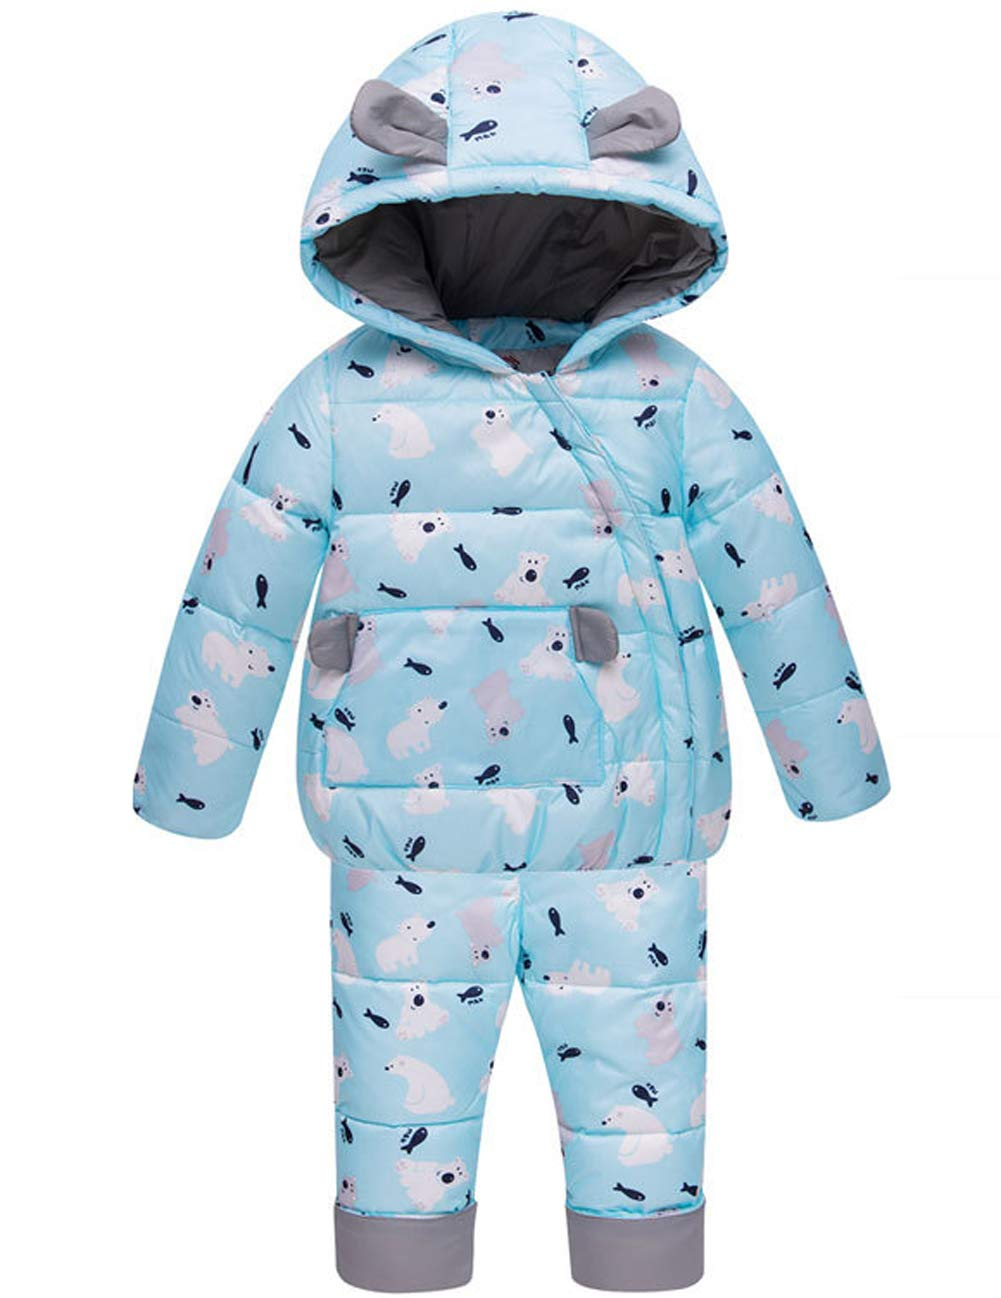 CADong Kids Baby Toddler Winter Ultralight Snowsuit, Puffer Jacket Two-Piece with Snow Ski Bib Pants for Little Unisex Baby